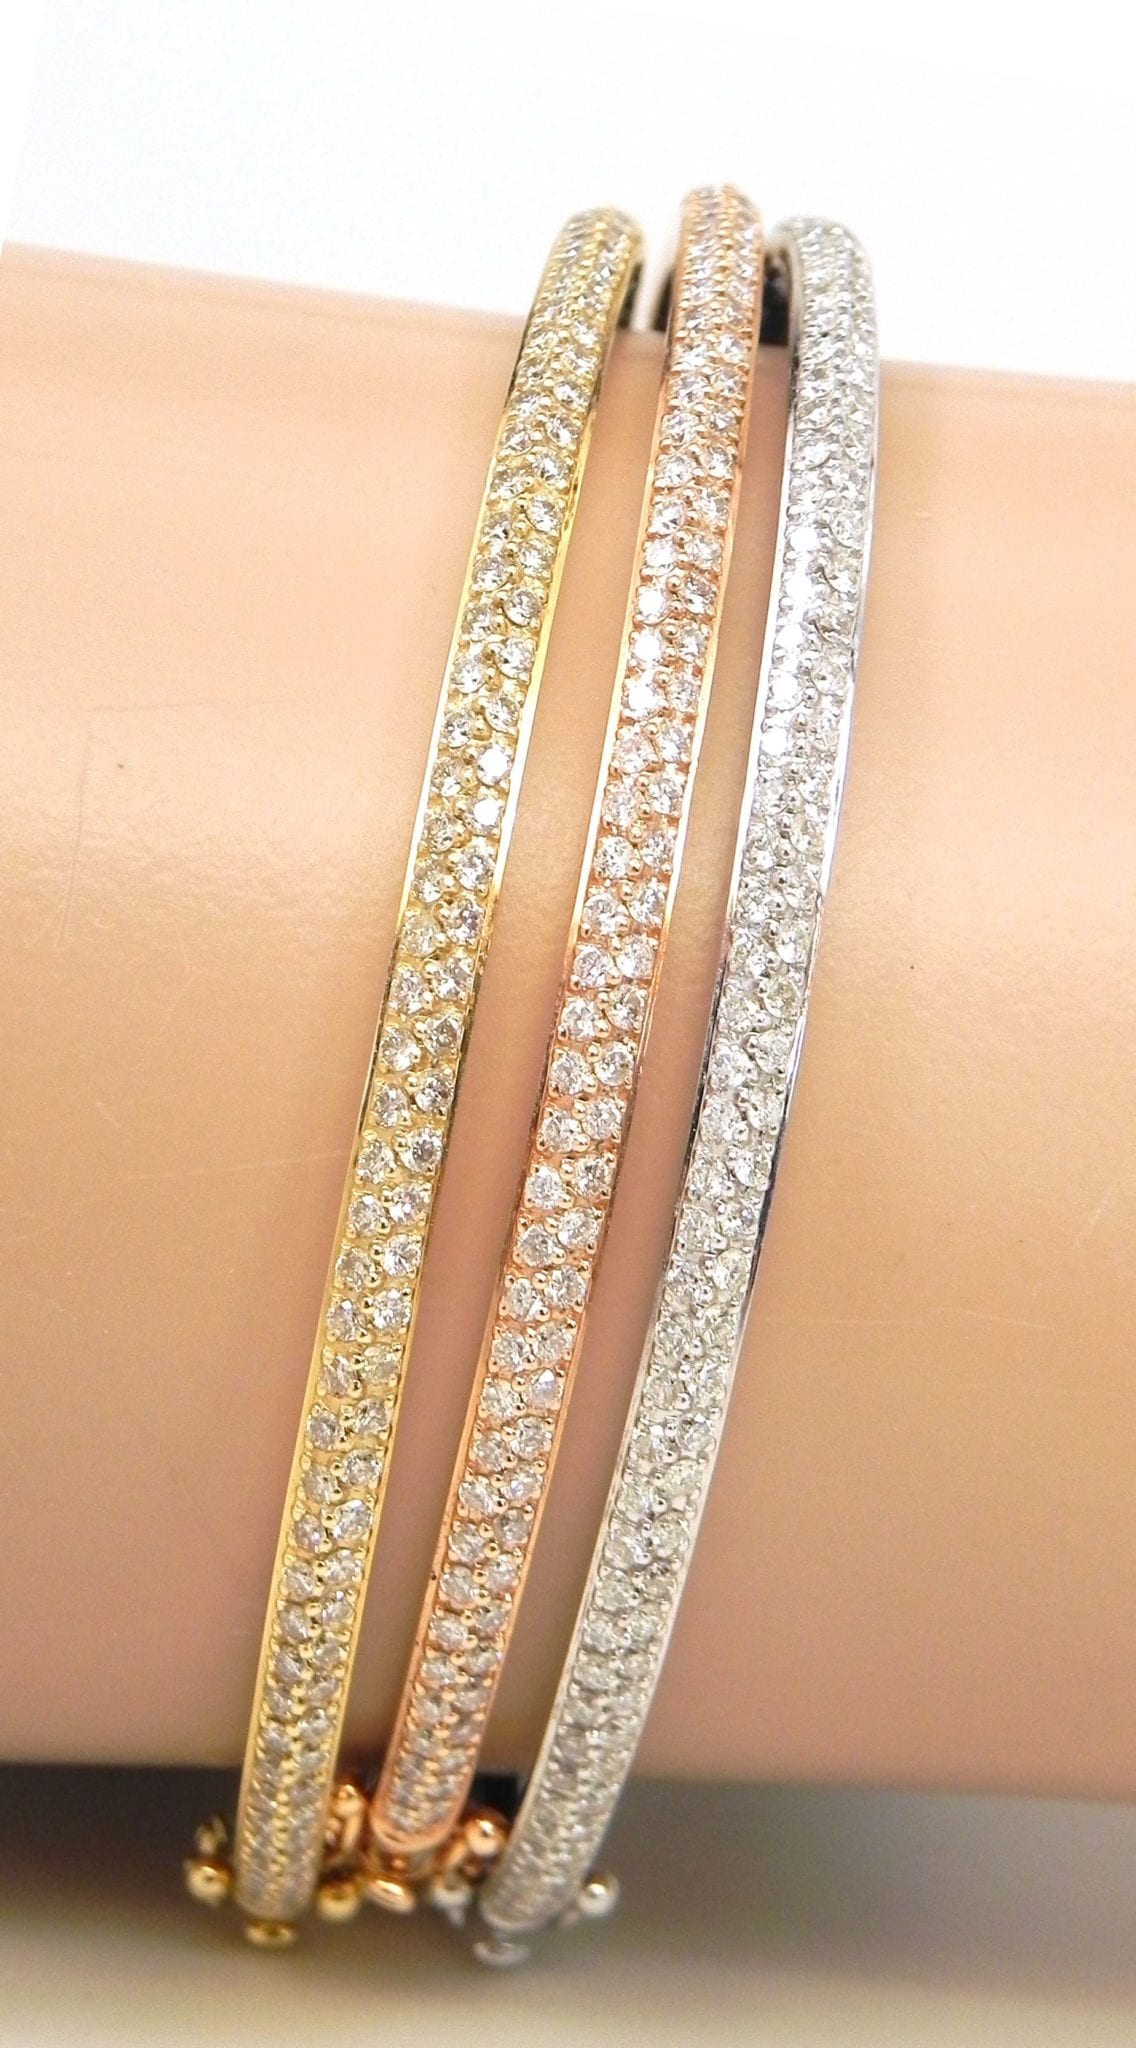 Ladies 14k Tri Color Gold 3 02 Cts Diamonds 3 Bangles Set